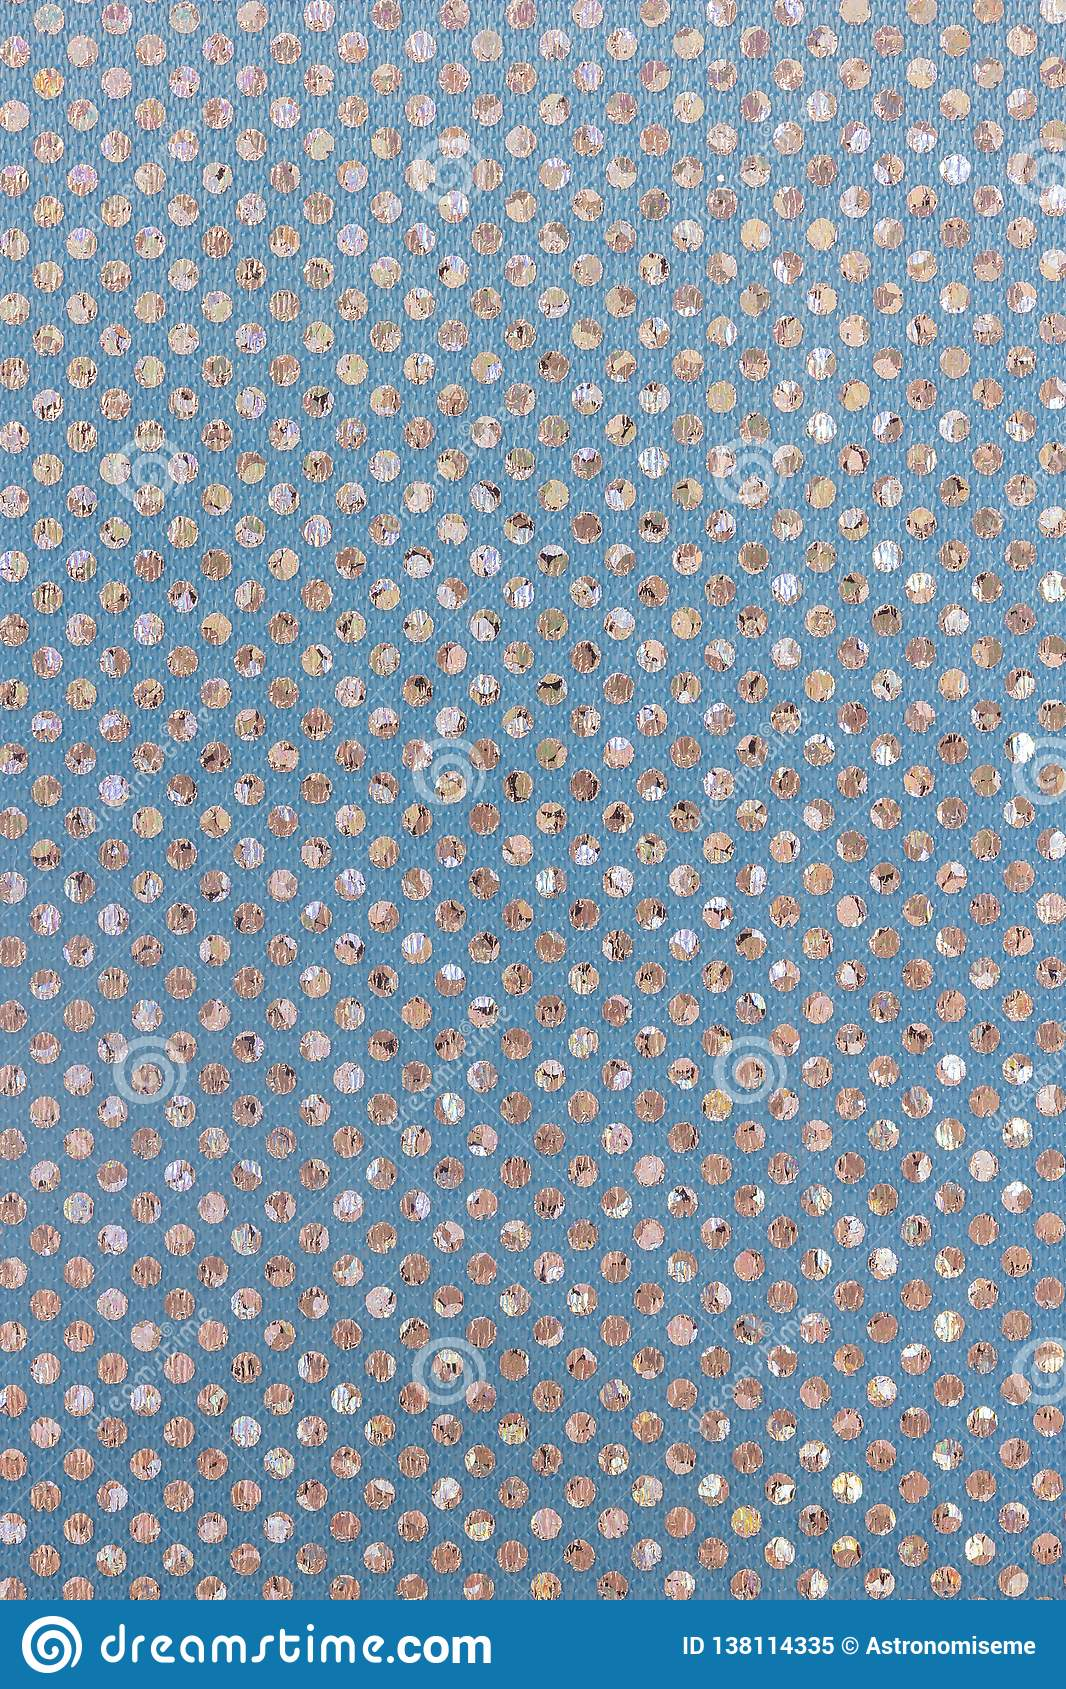 Silver polka dots on a blue background